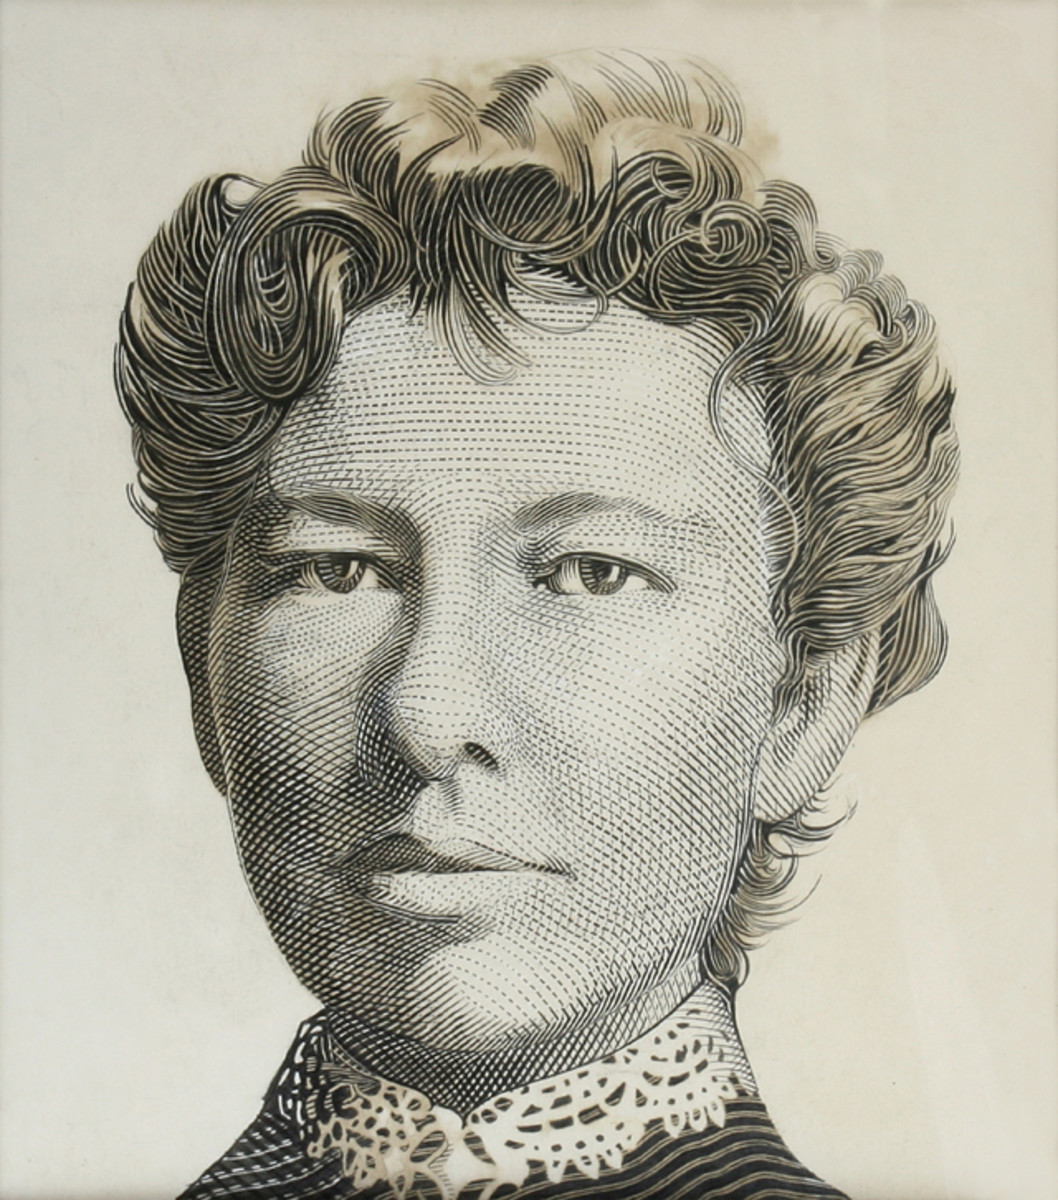 Original engraving of Dame Mary Gilmour used on 2001 federation $5 commemorative note (P-56).